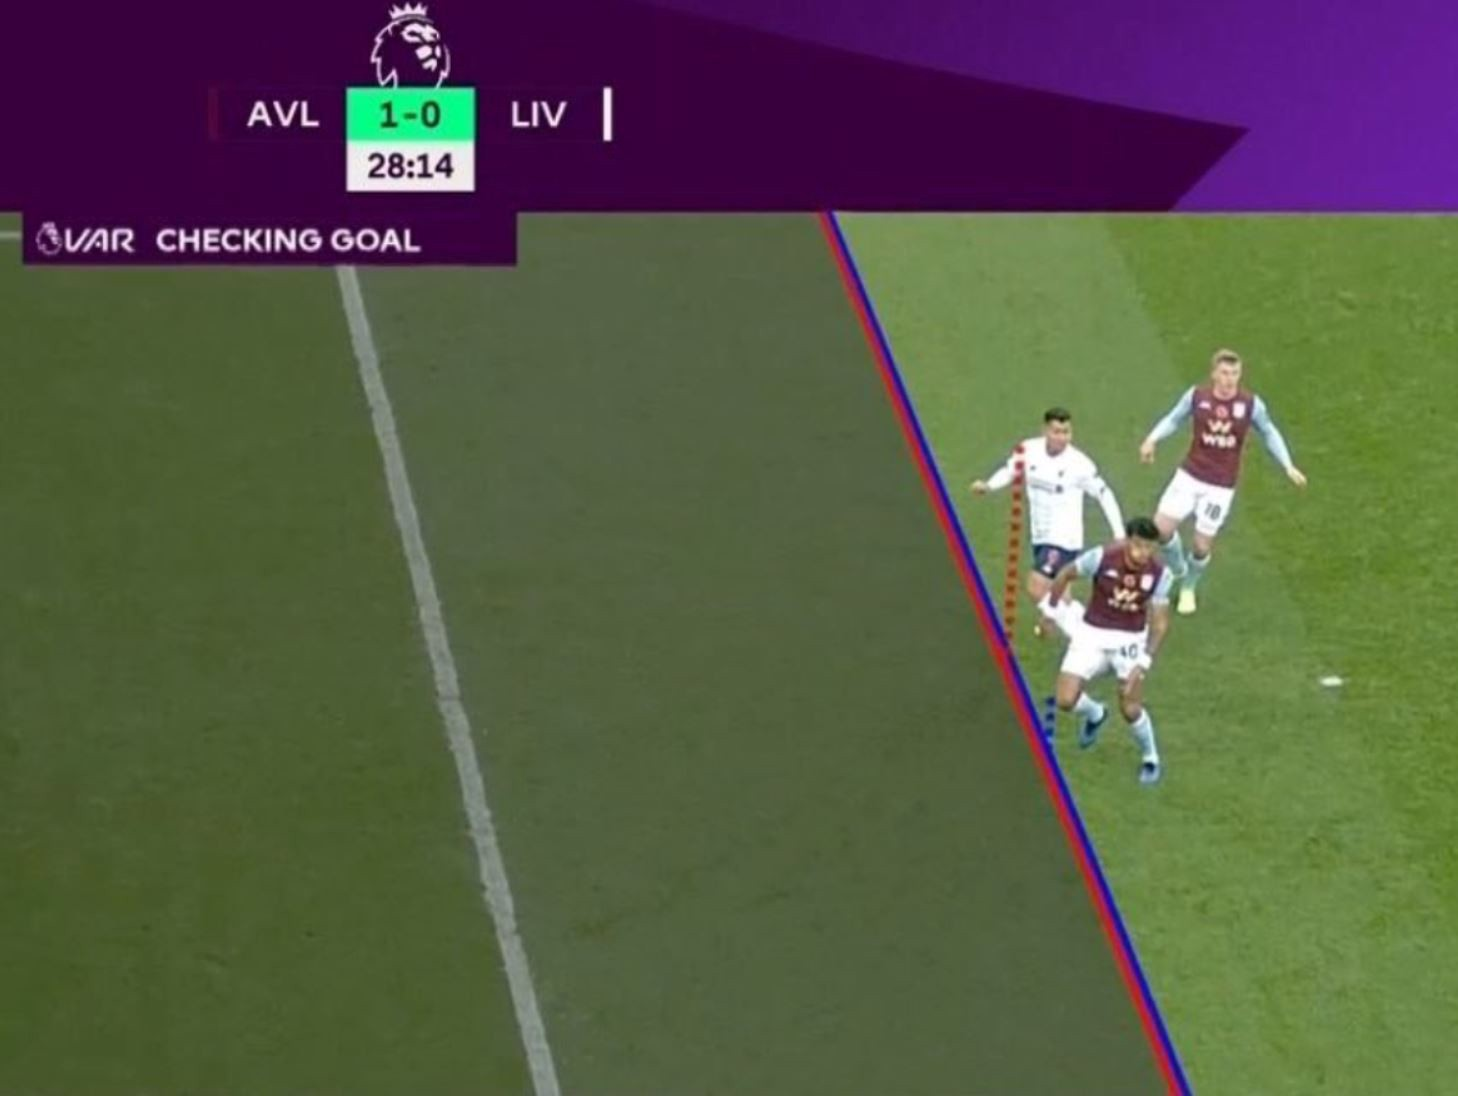 Tight offside decision decided by the position of a player's armpit, which is hidden in a loose shirt.